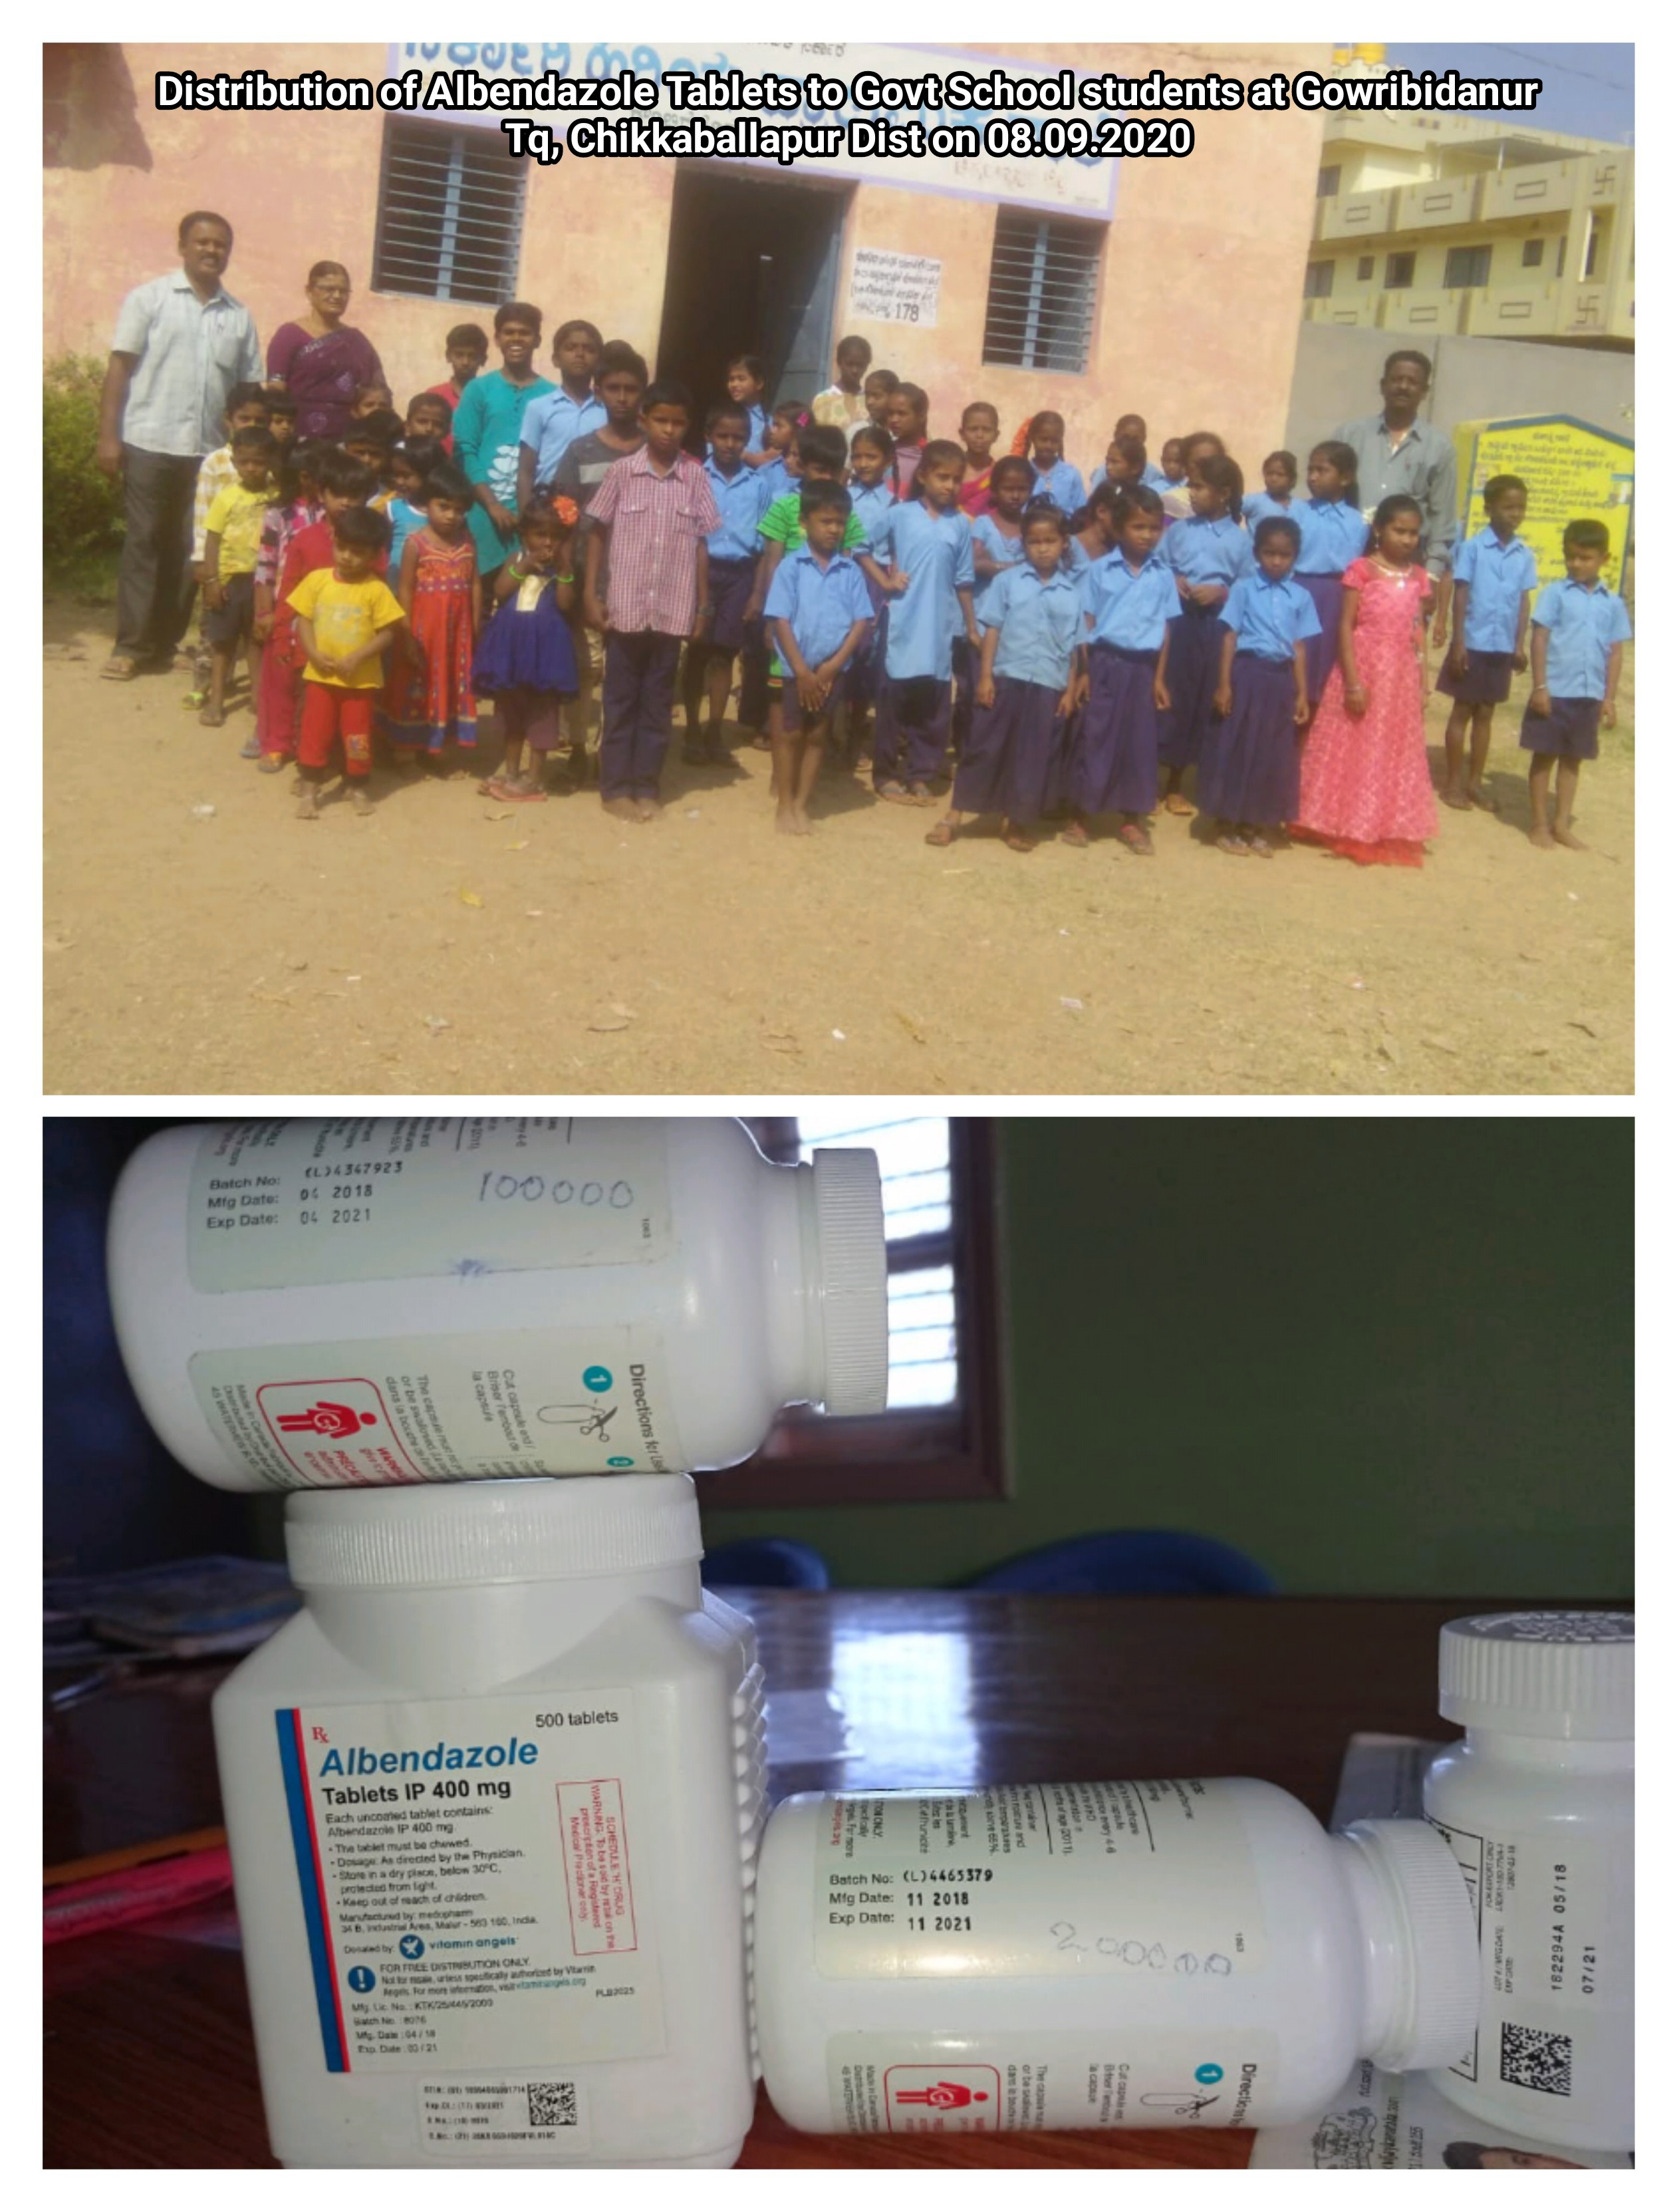 /media/sirds/1NGO-00222-SIRDS-Main_Page-Medicine_Distribution_to_Students.jpg